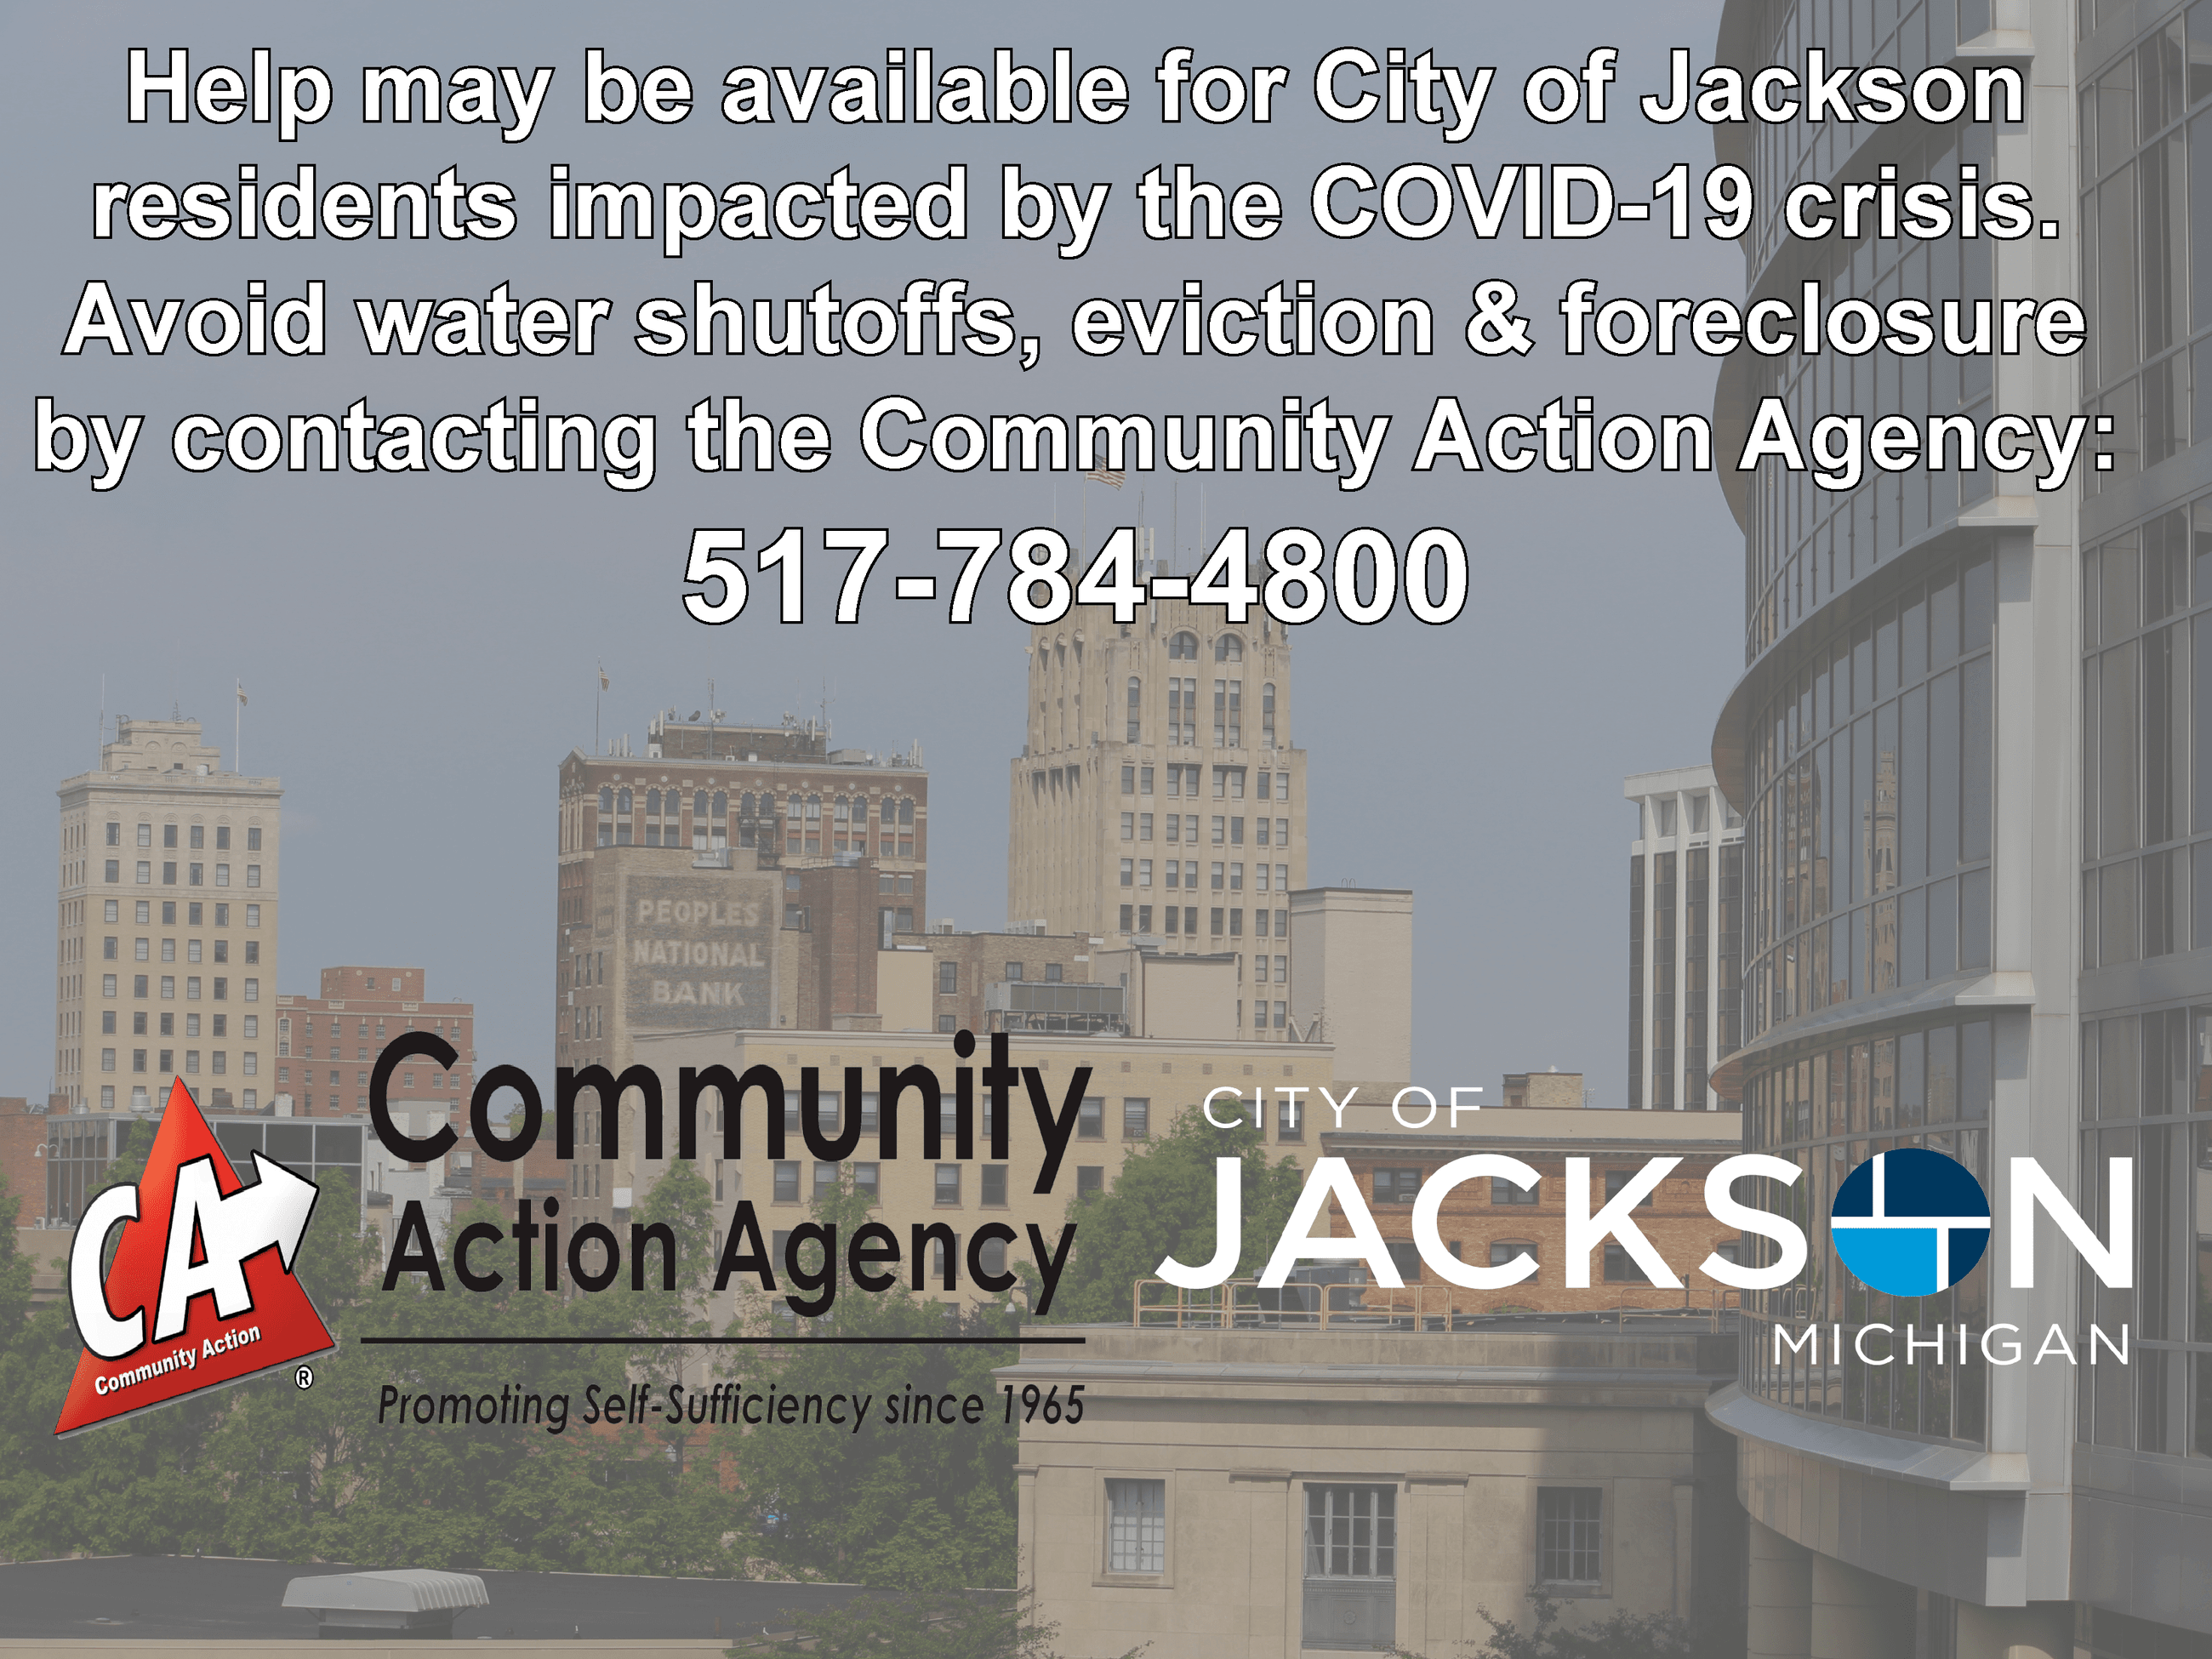 COVID-19 relief for Jackson residents